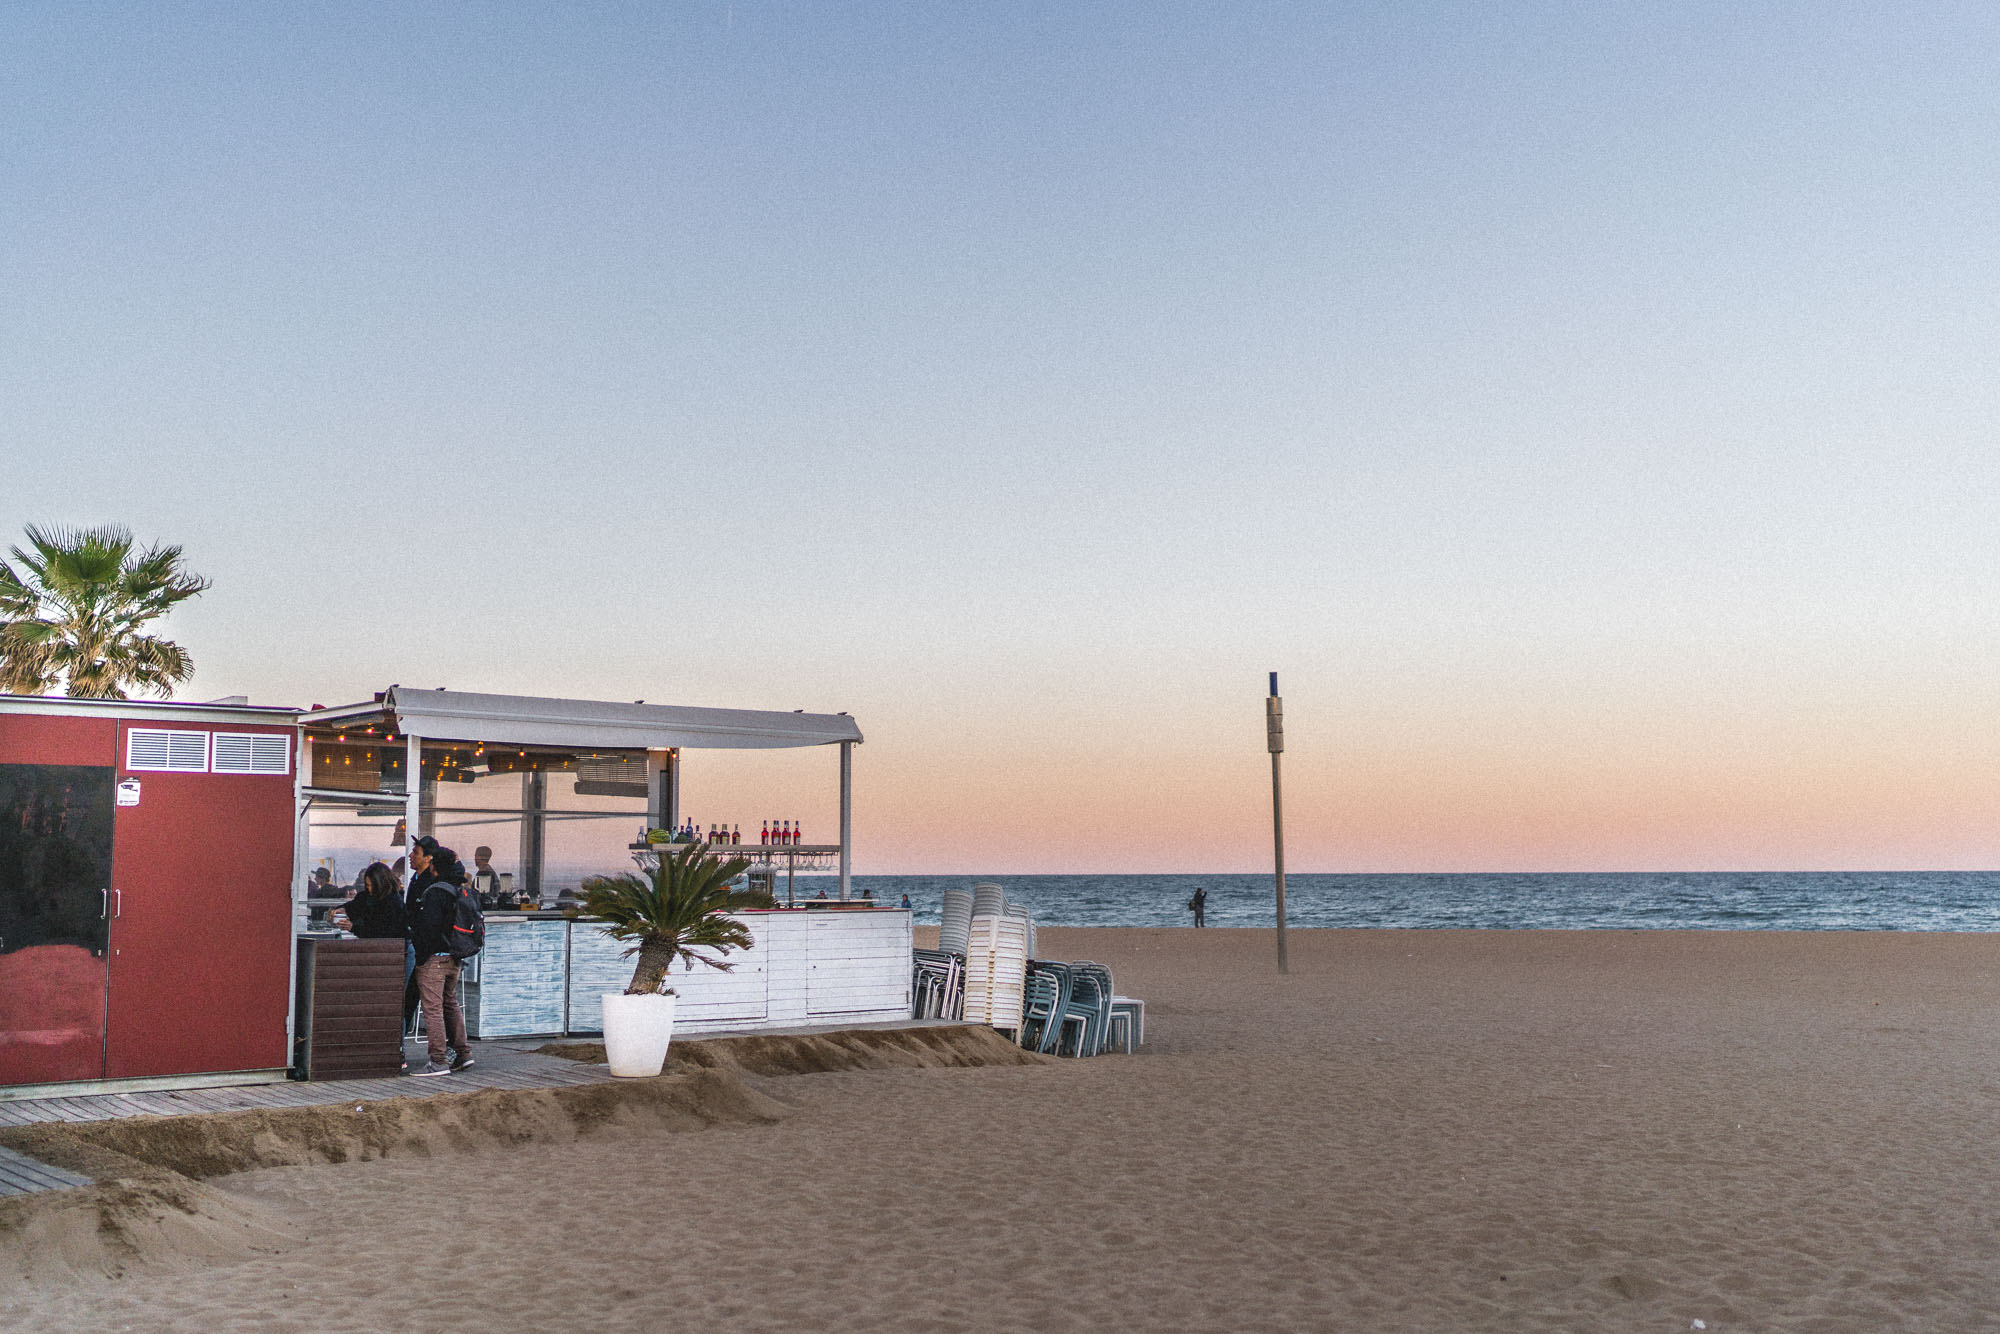 Beachfront restaurants and cafes in Barcelona, Spain